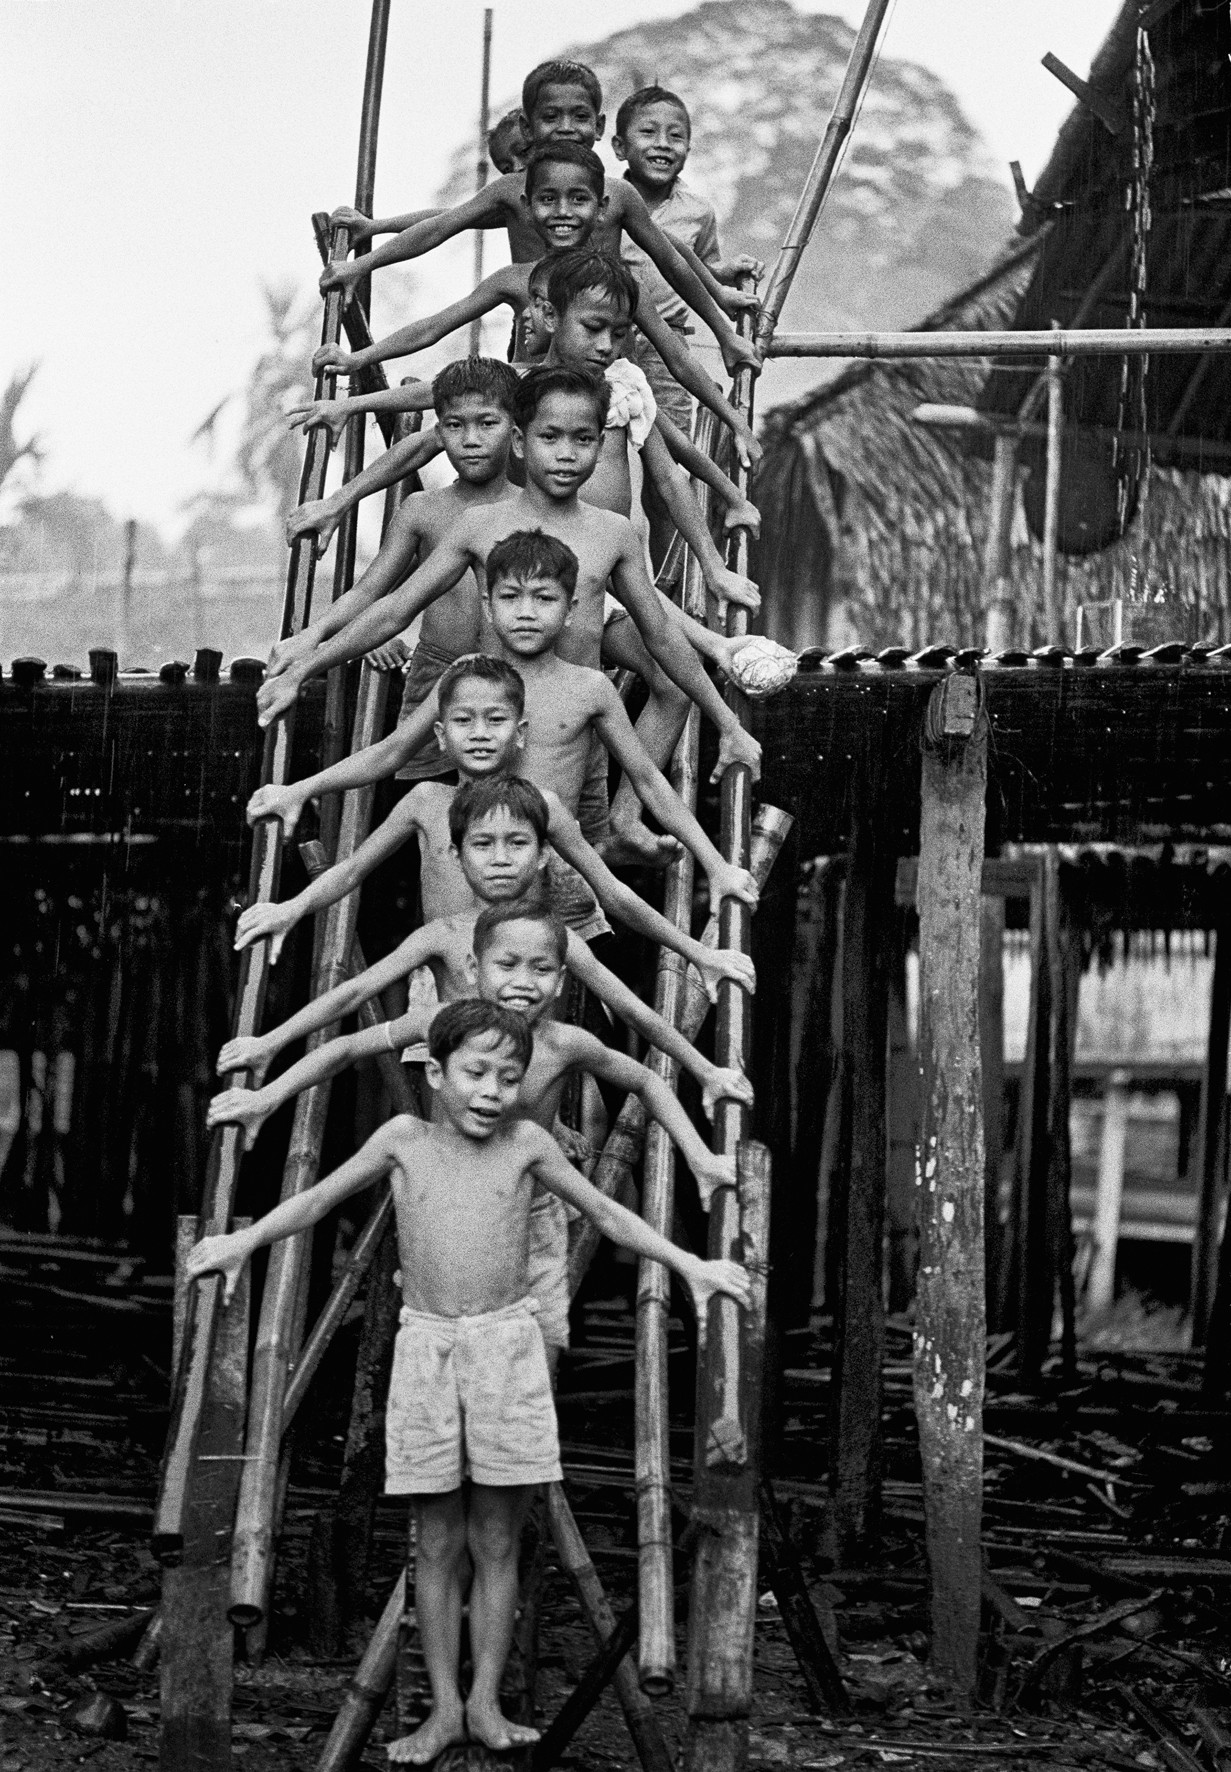 © Wanderlust - 60 Years of Images by Thomas Hoepker, to be published by teNeues in September 2014, www.teneues.com. MALAYSIA, 1964-73, Photo © 2014 Thomas Hoepker/Magnum Photos. All rights reserved.